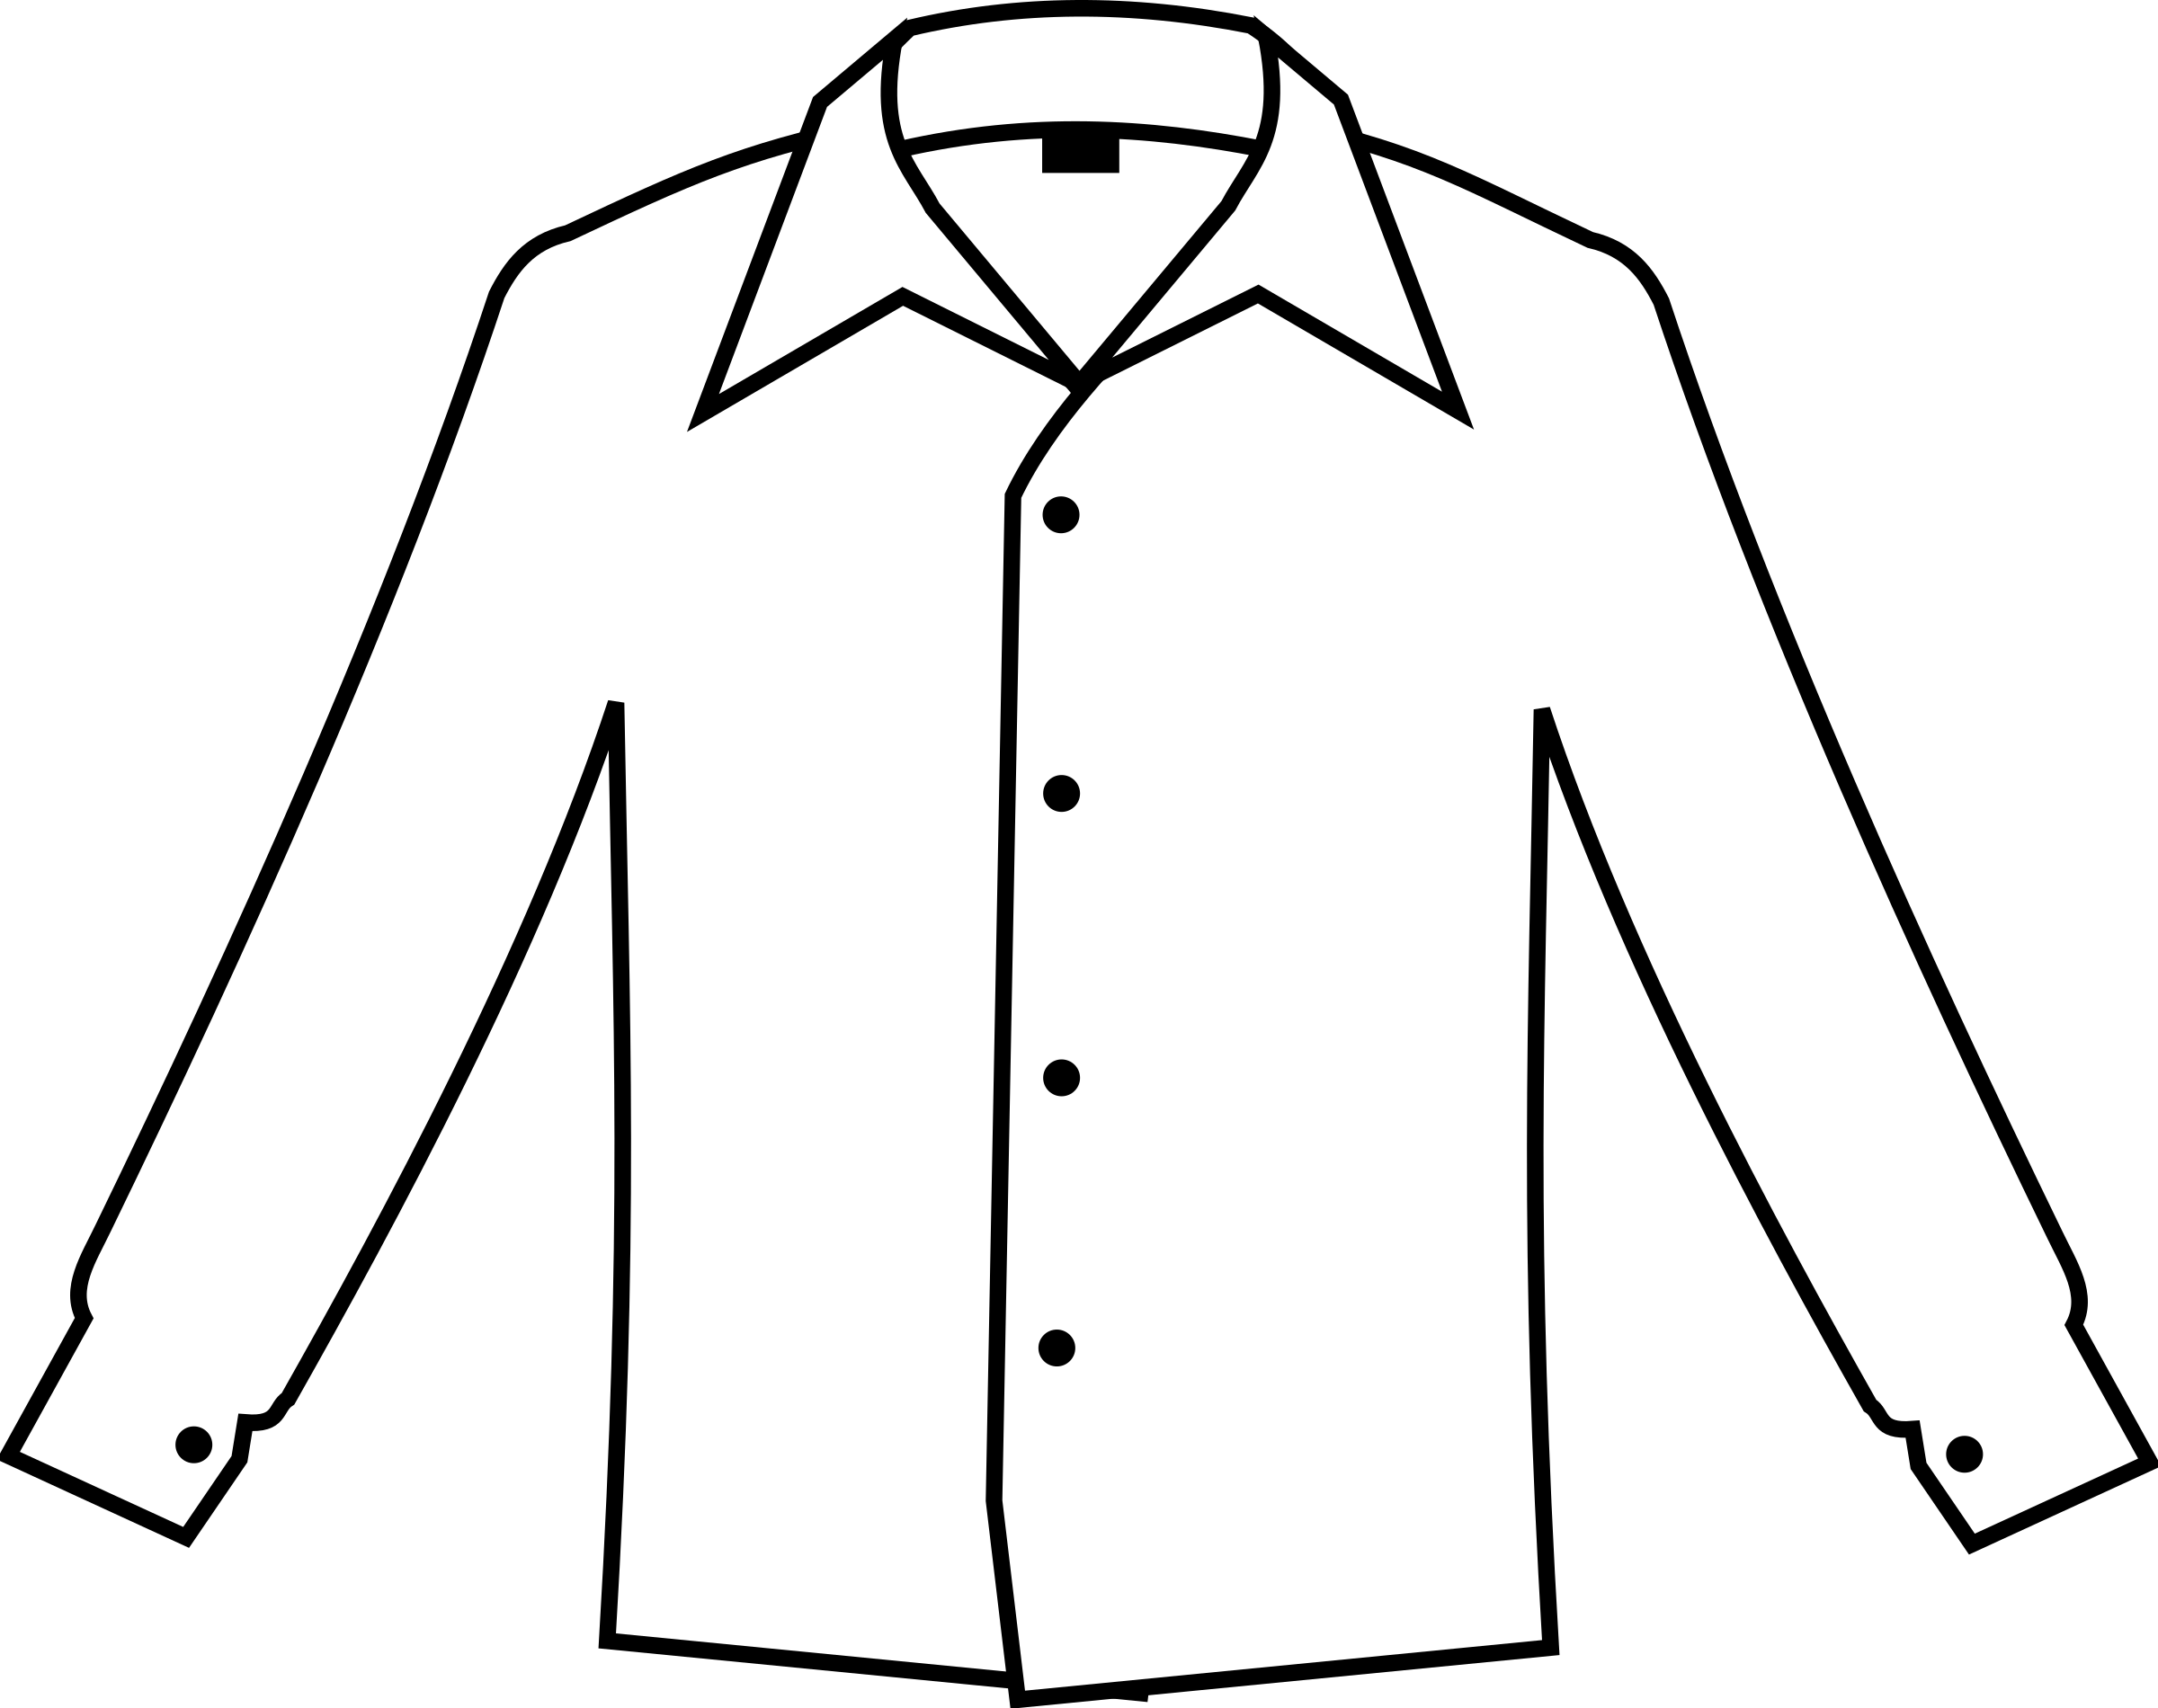 Shirt clipart button up shirt. White drawing at getdrawings